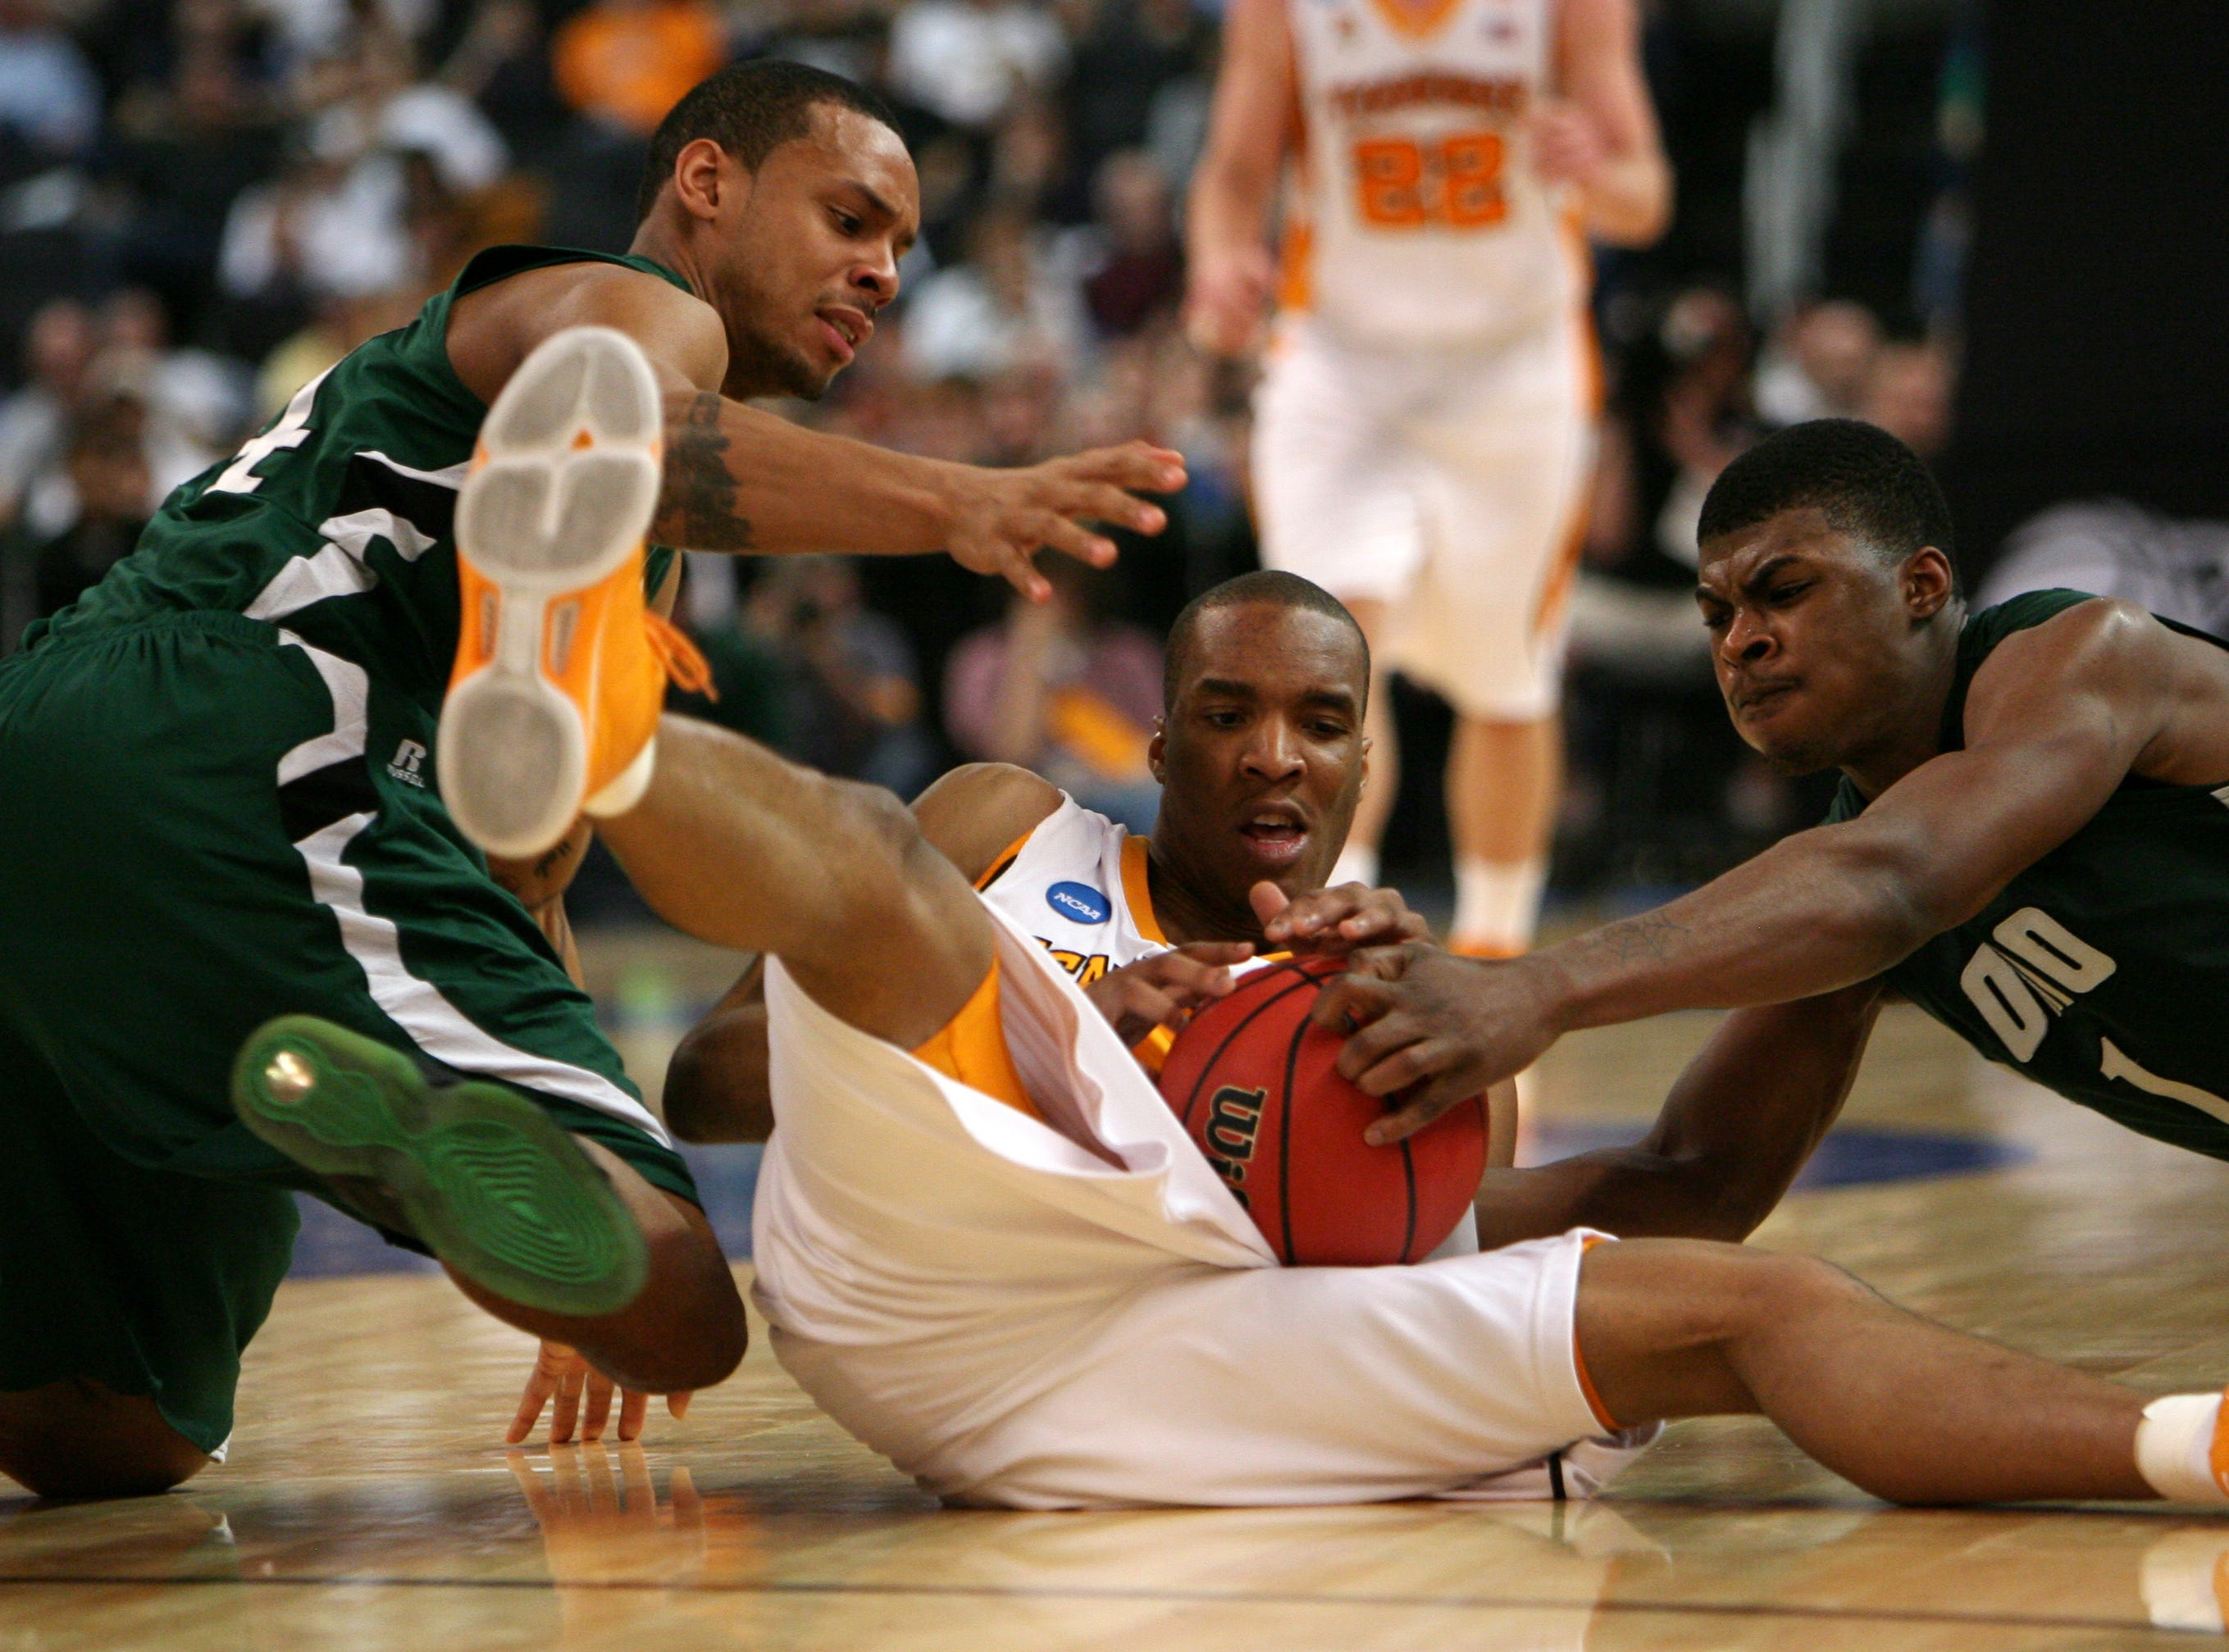 Tennessee's J.P. Prince tries to maintain control of the ball as Ohio's  Asown Sayles, left, and DeVaughn Washington defend during the second round of the NCAA tournament in Providence, R.I. Saturday, Mar. 20, 2010.